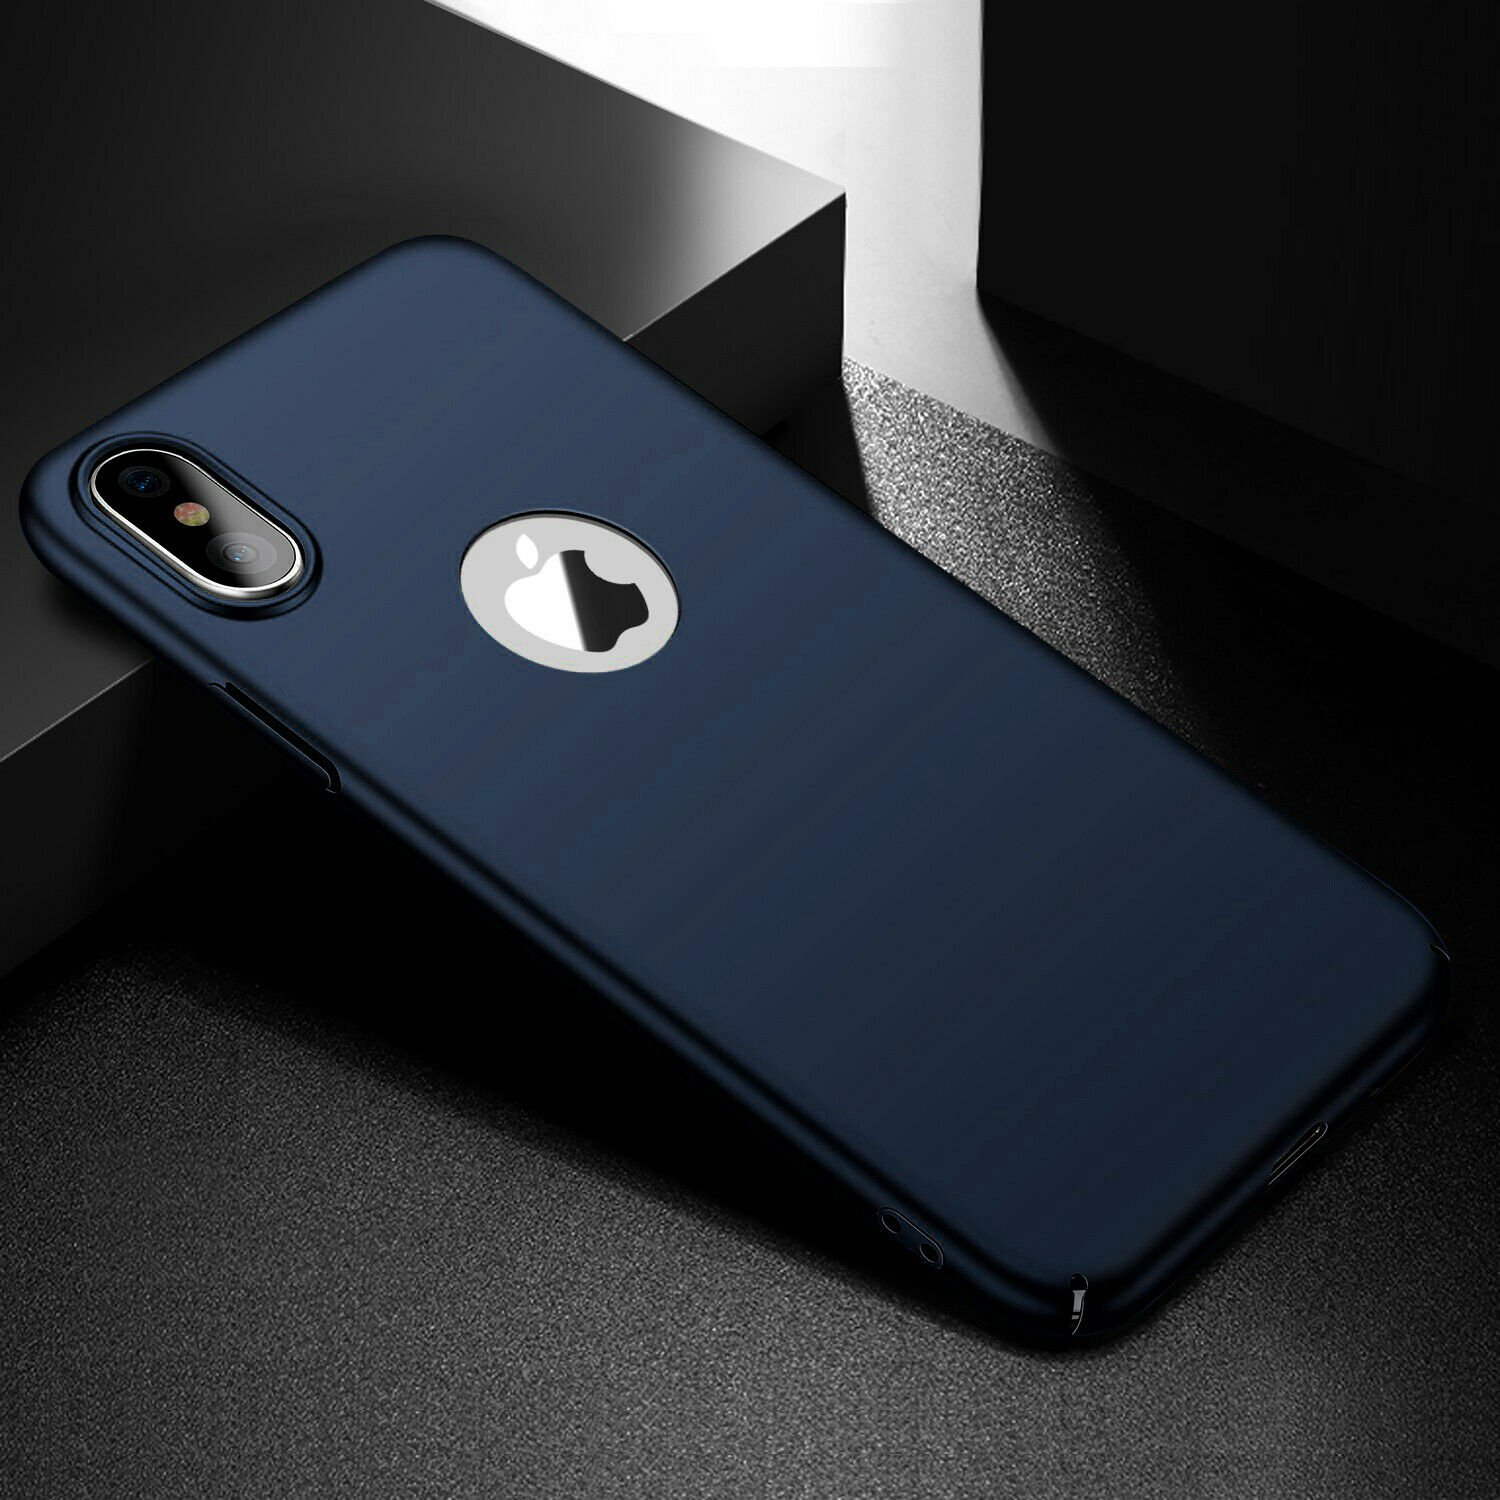 For-iPhone-X-XR-XS-Max-Matte-Case-Shockproof-Ultra-Thin-Slim-Hard-Cover thumbnail 22